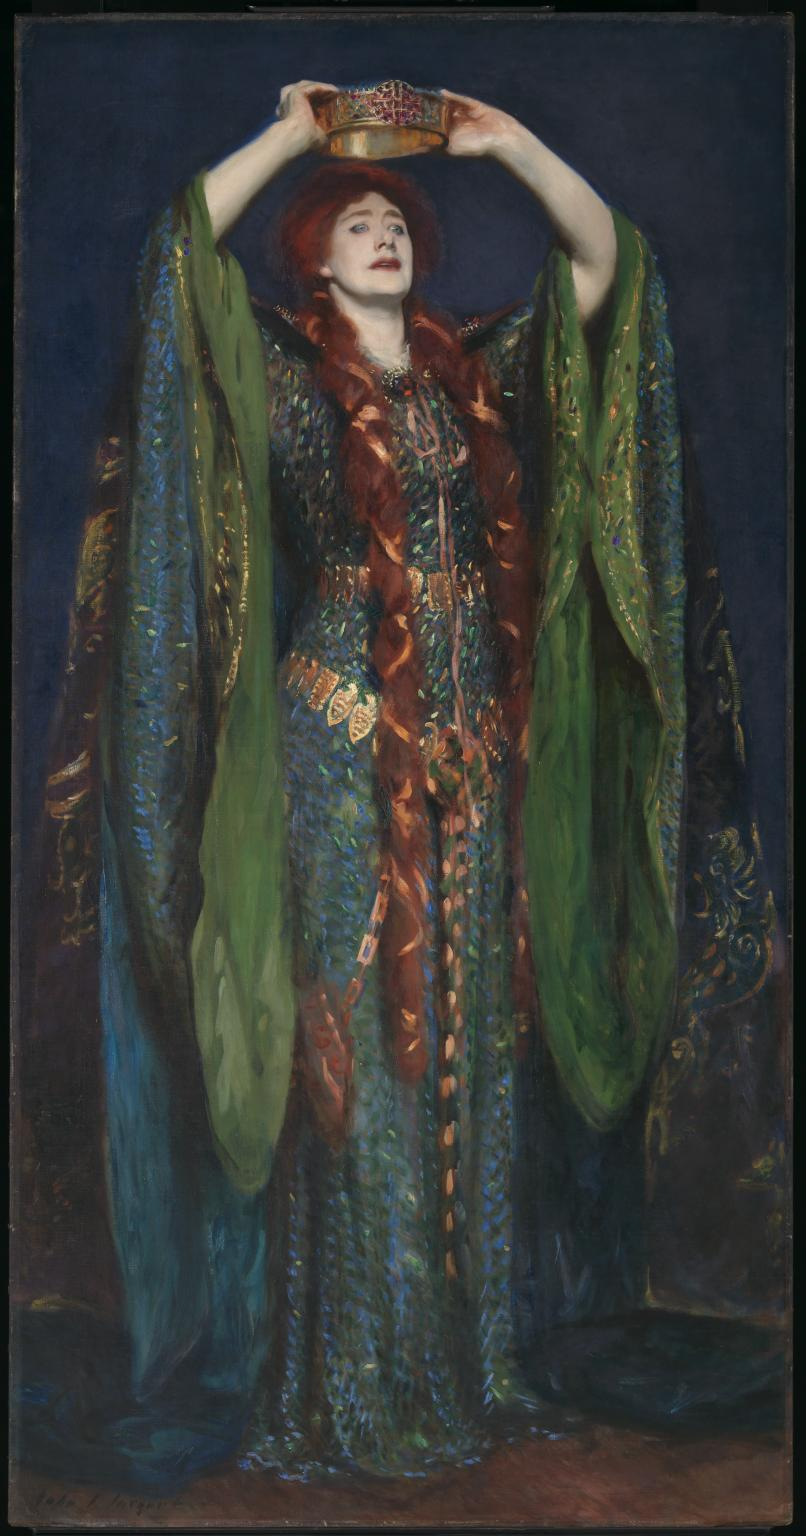 Lady Macbeth, by John Singer Sargent, 1889